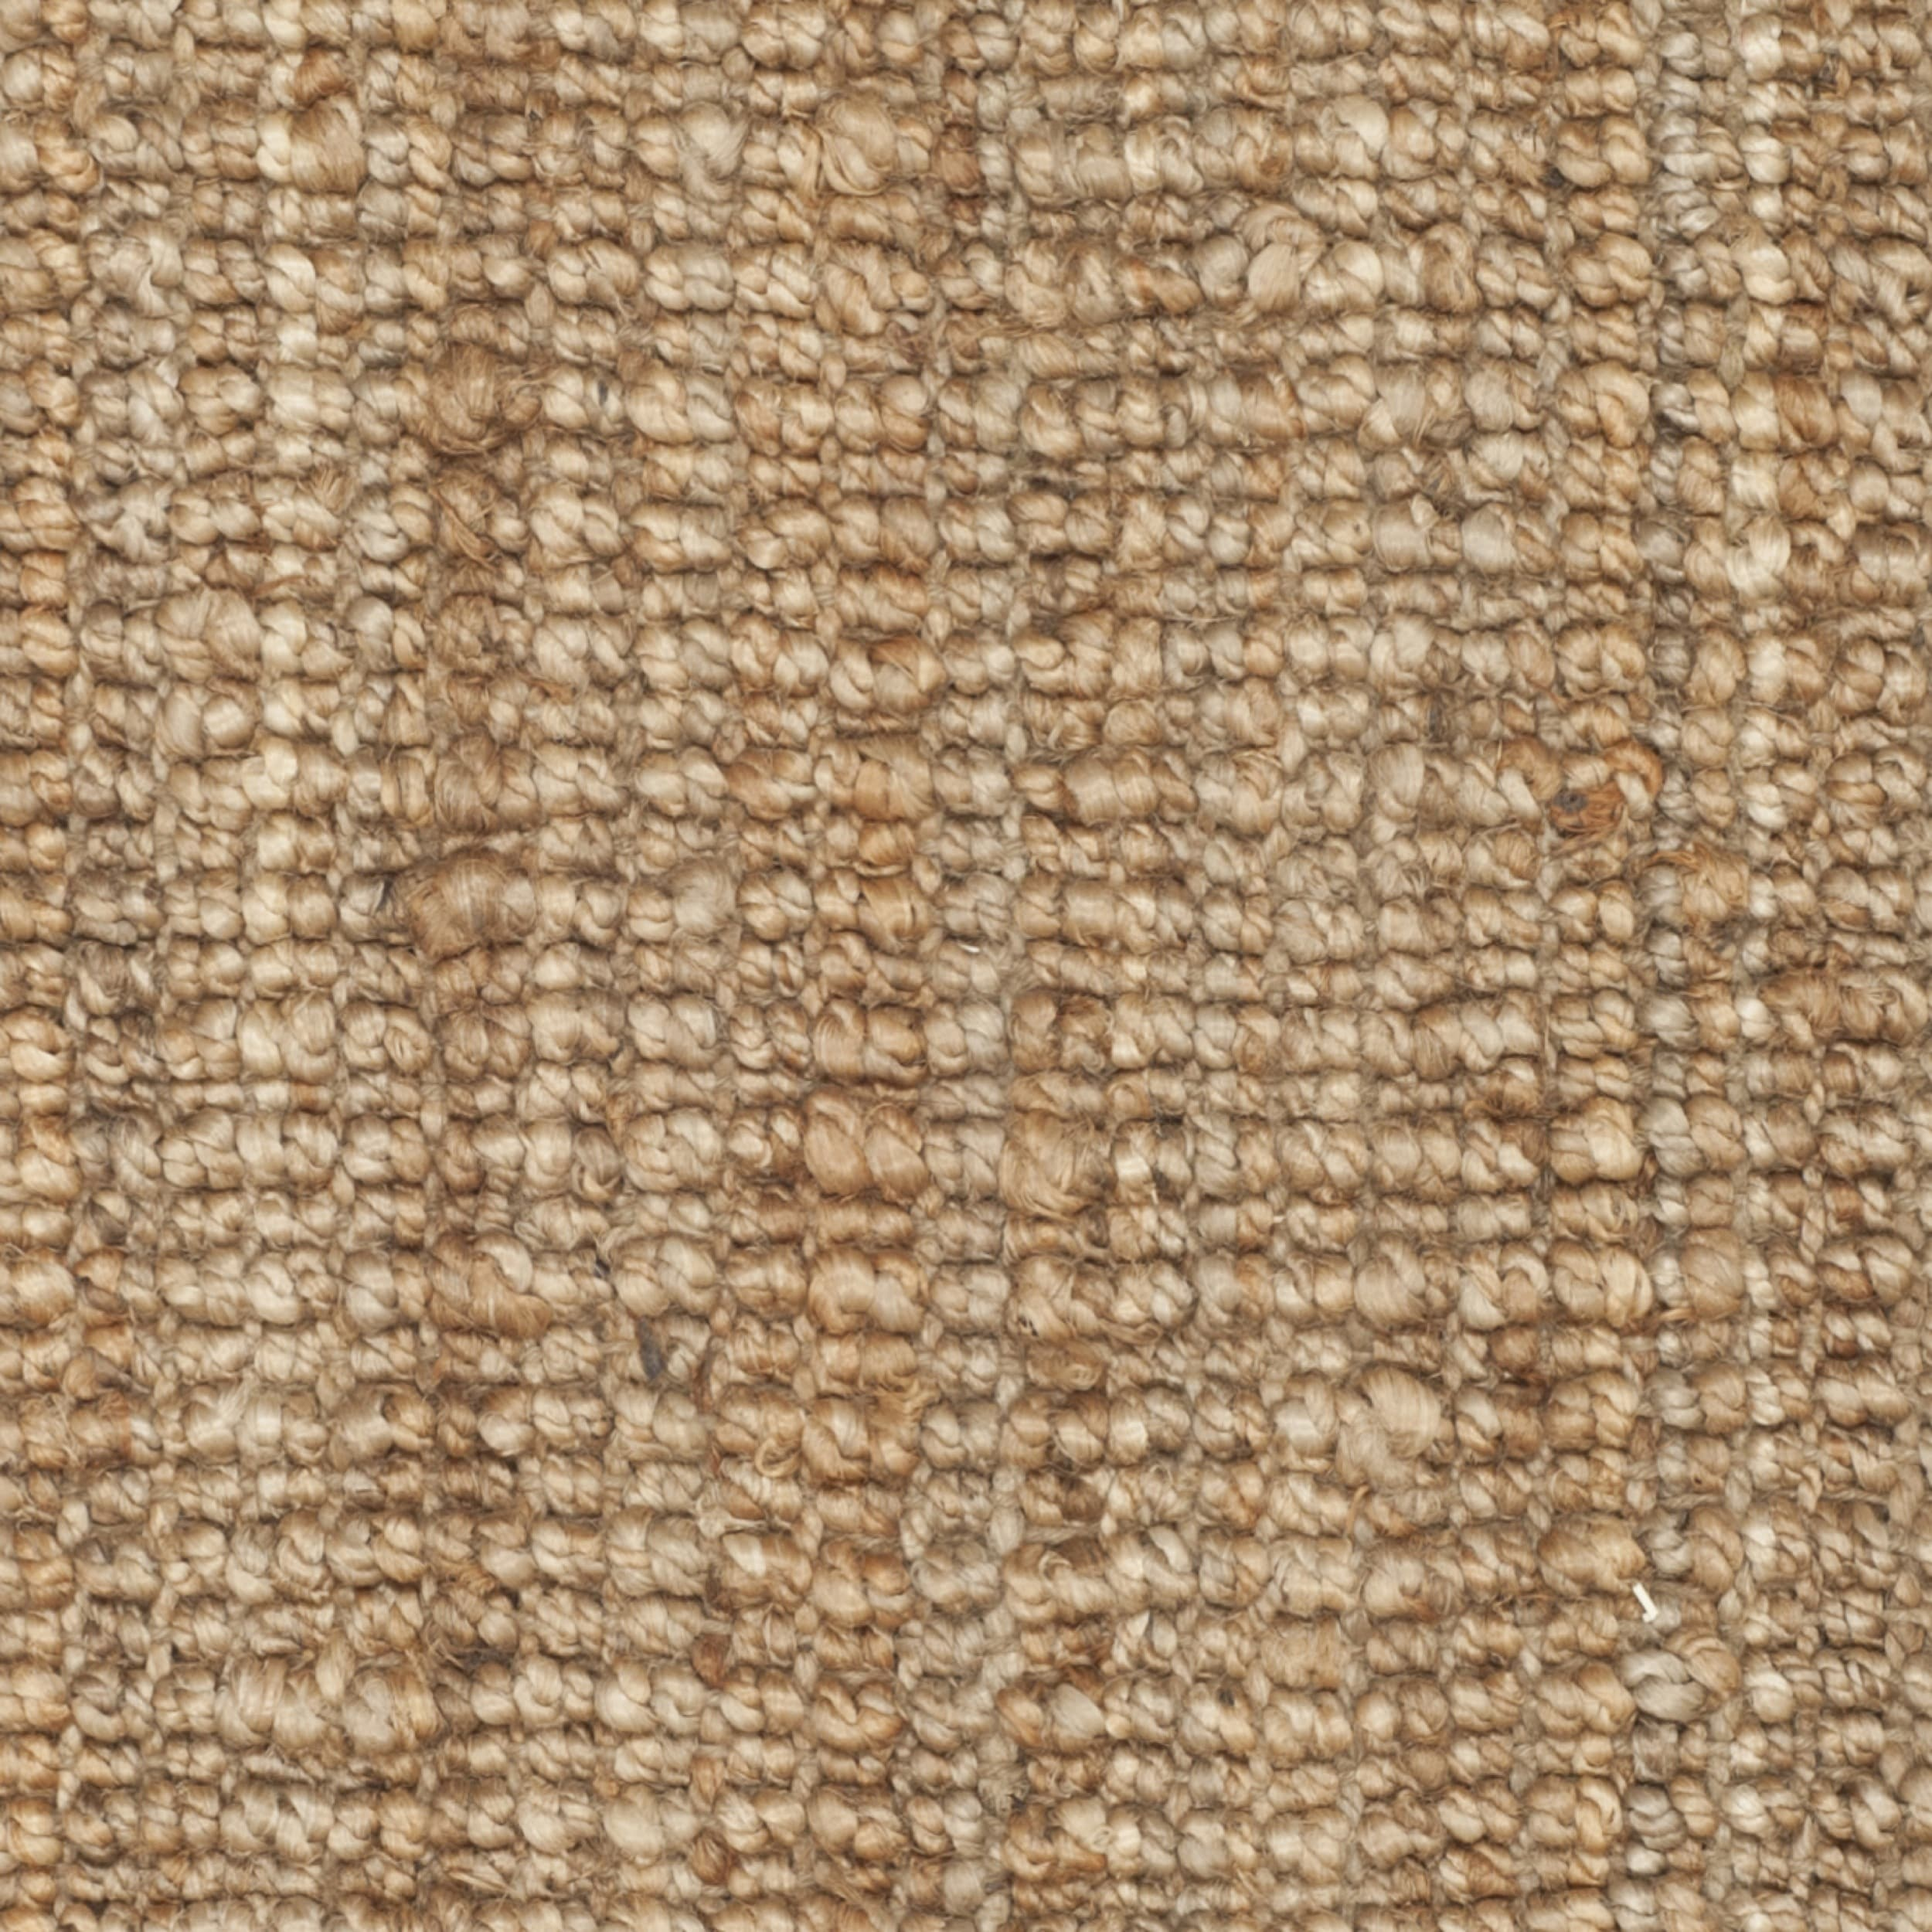 shipping accents today hand woven free rug x jute fiber natural garden overstock chunky home product thick casual safavieh